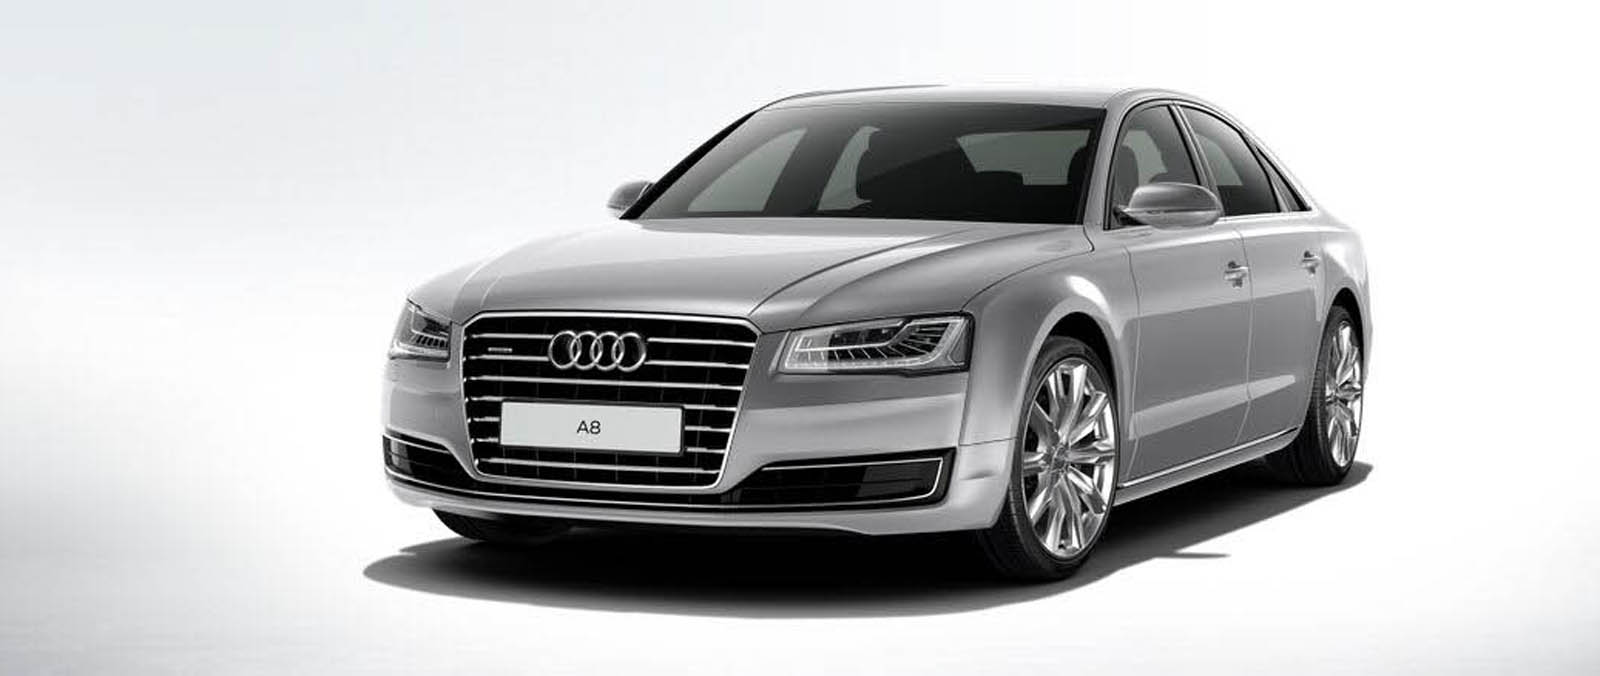 Audi A8 21 Sport Edition is feestnummer